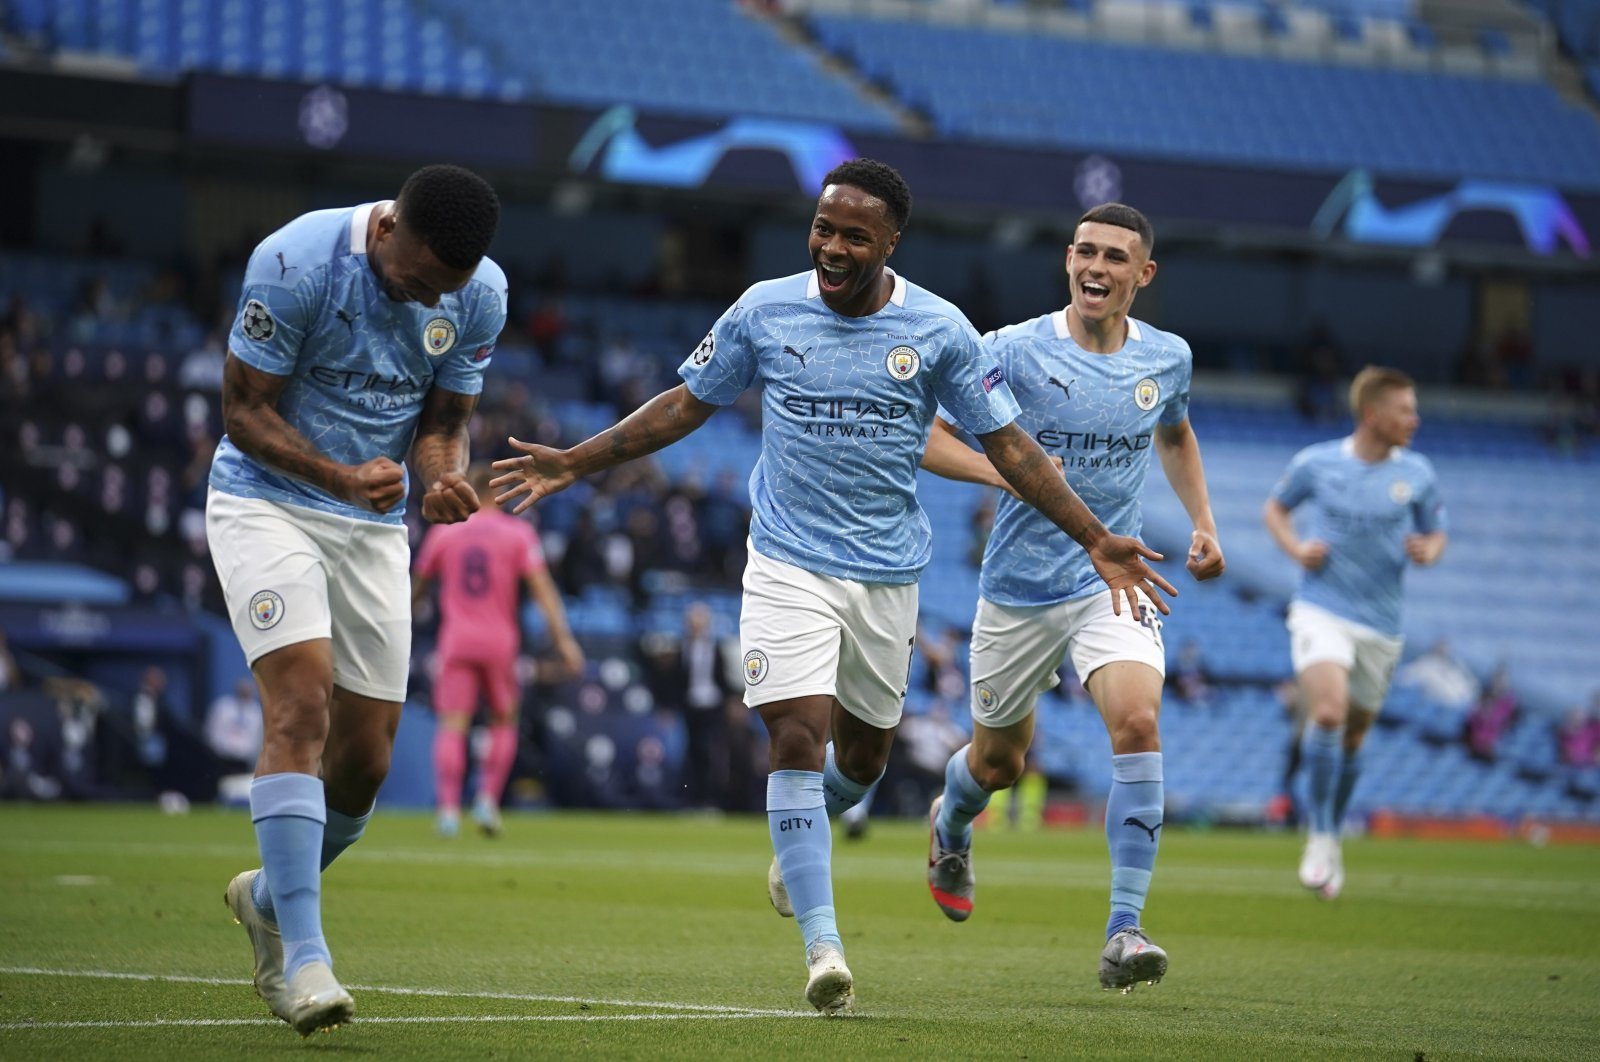 Manchester City's Raheem Sterling (C) celebrates after scoring a goal during a Champions League match against Real Madrid, in Manchester, England, Aug. 7, 2020. (AP Photo)